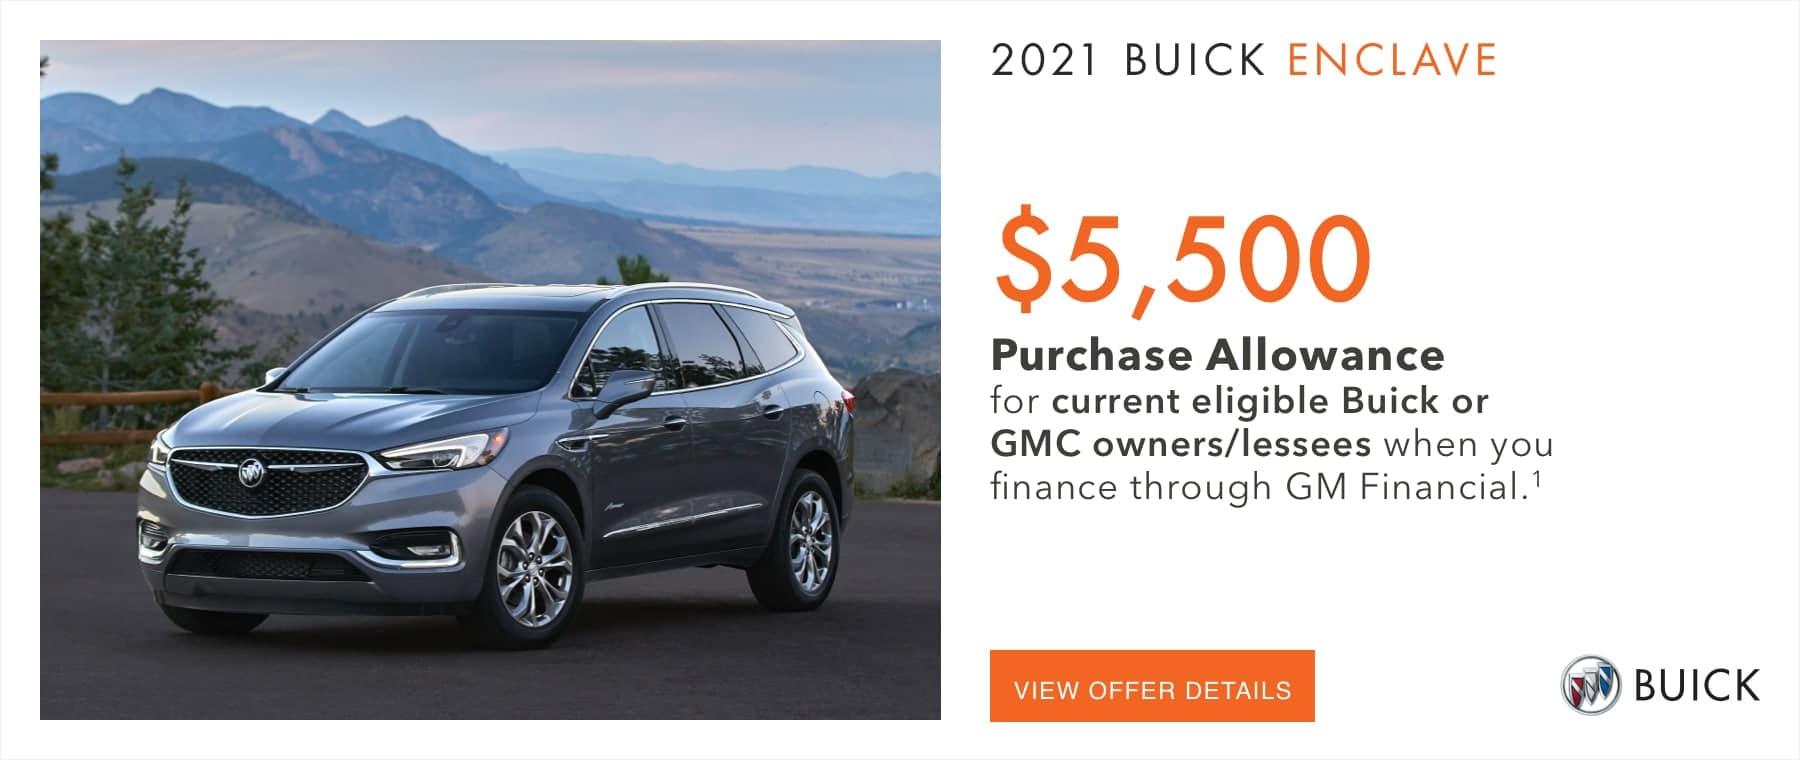 $5,500 Purchase Allowance for current eligible Buick or GMC owners/lessees when you finance through GM Financial.1